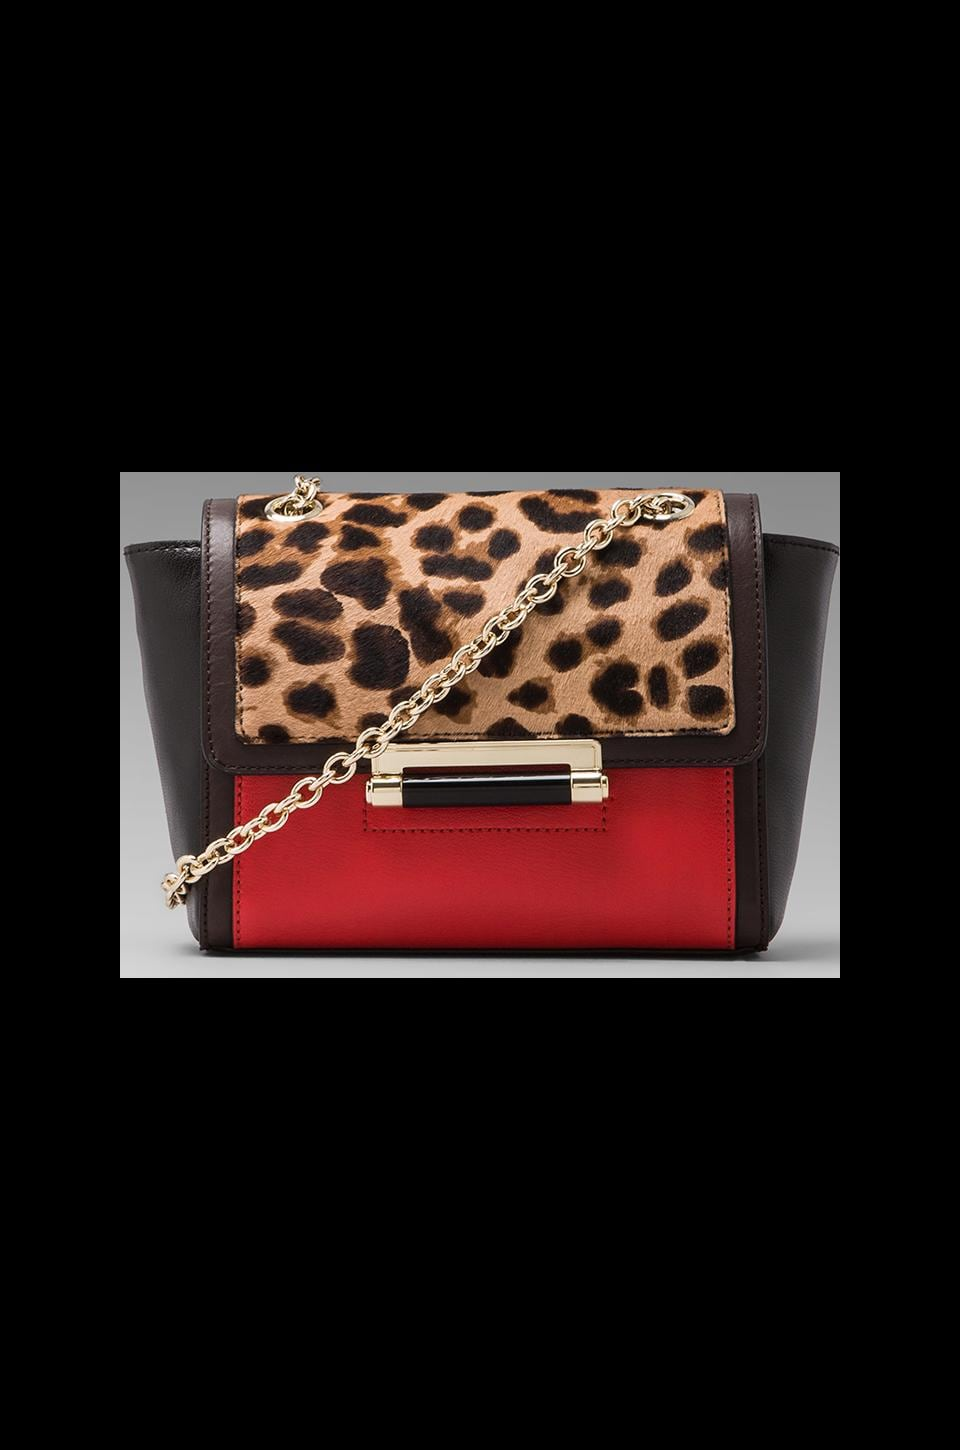 Diane von Furstenberg Mini Haircalf Clutch in Leopard